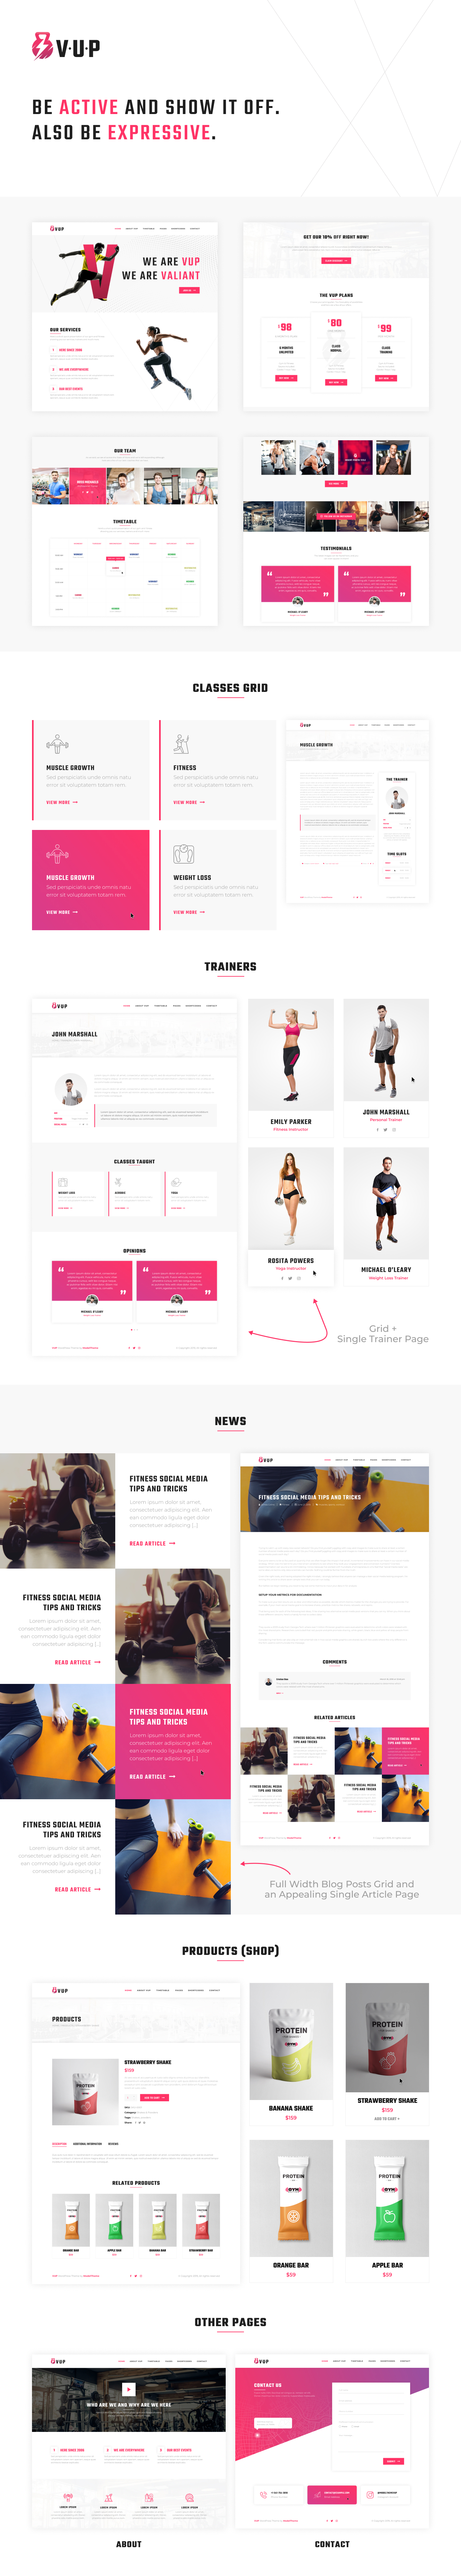 VUP - Fitness Center WordPress Theme - 1